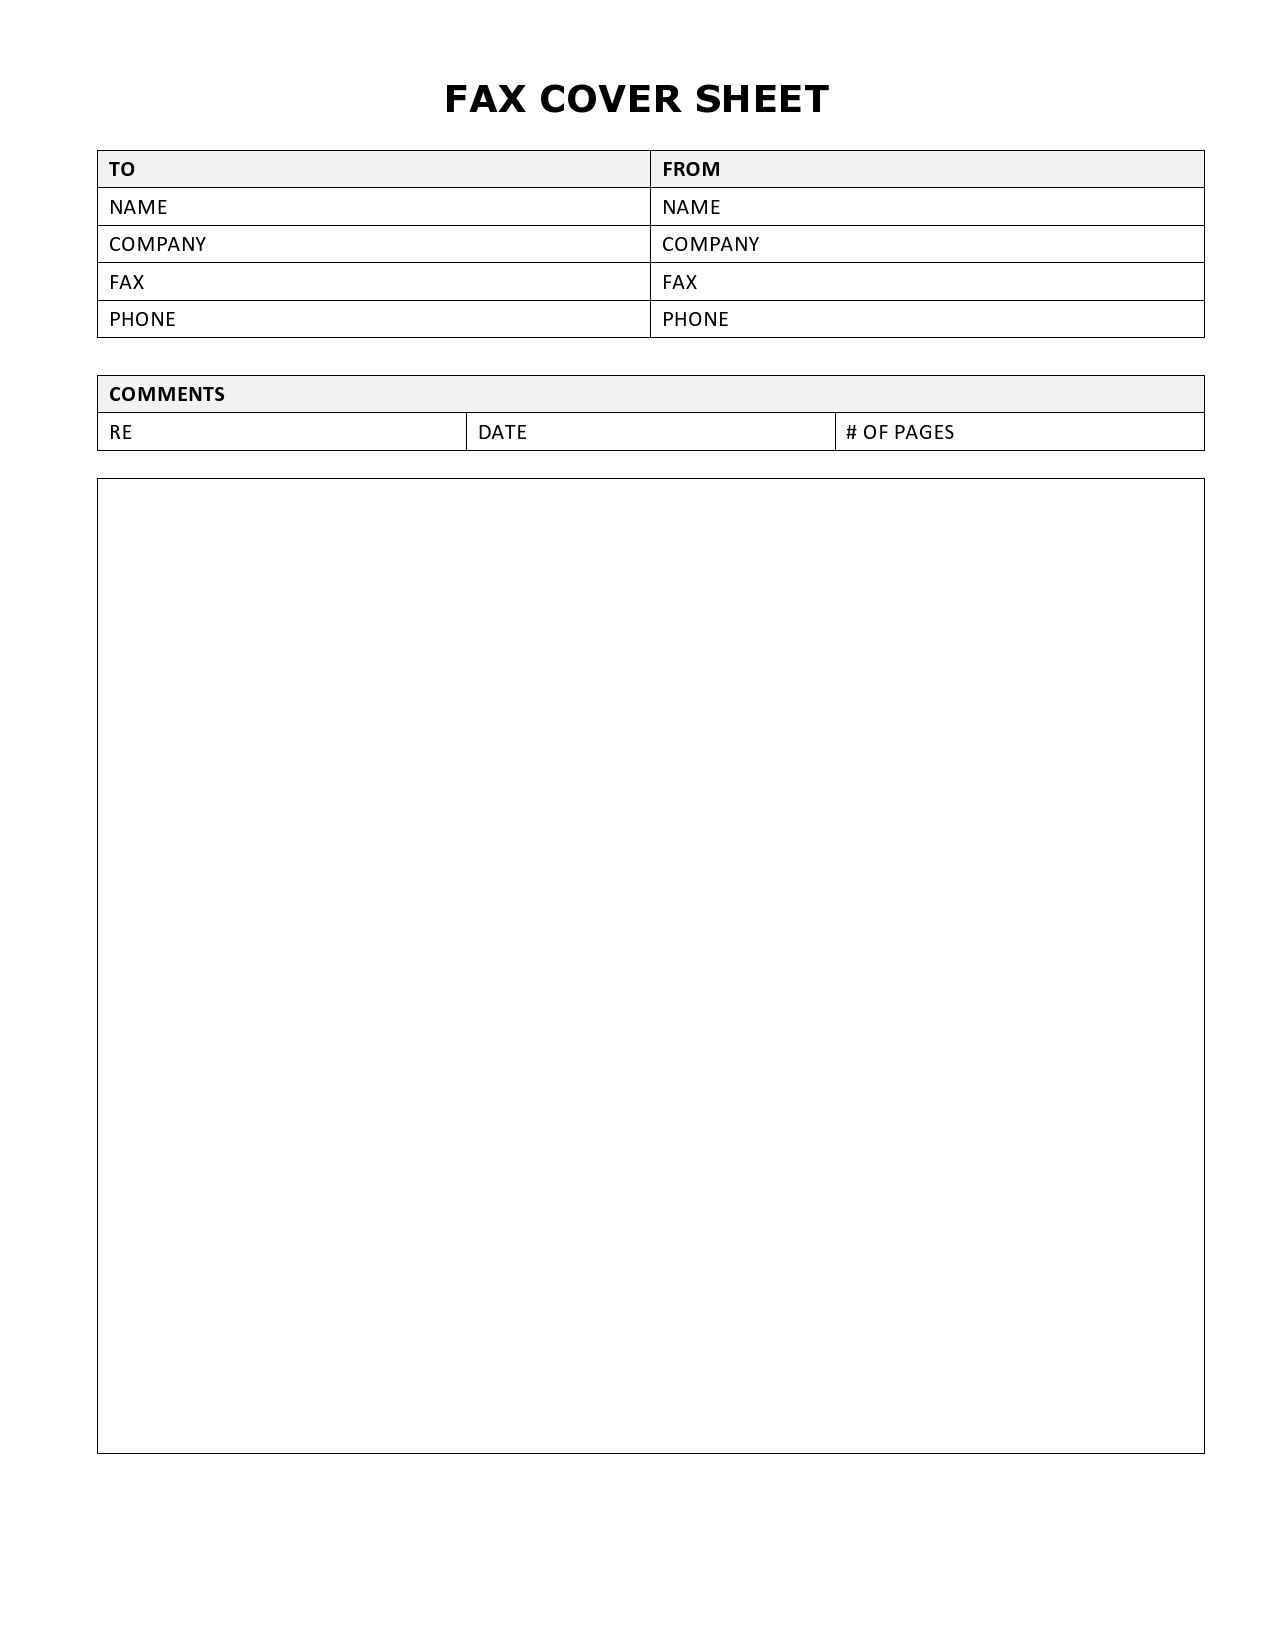 free fax cover sheet 16